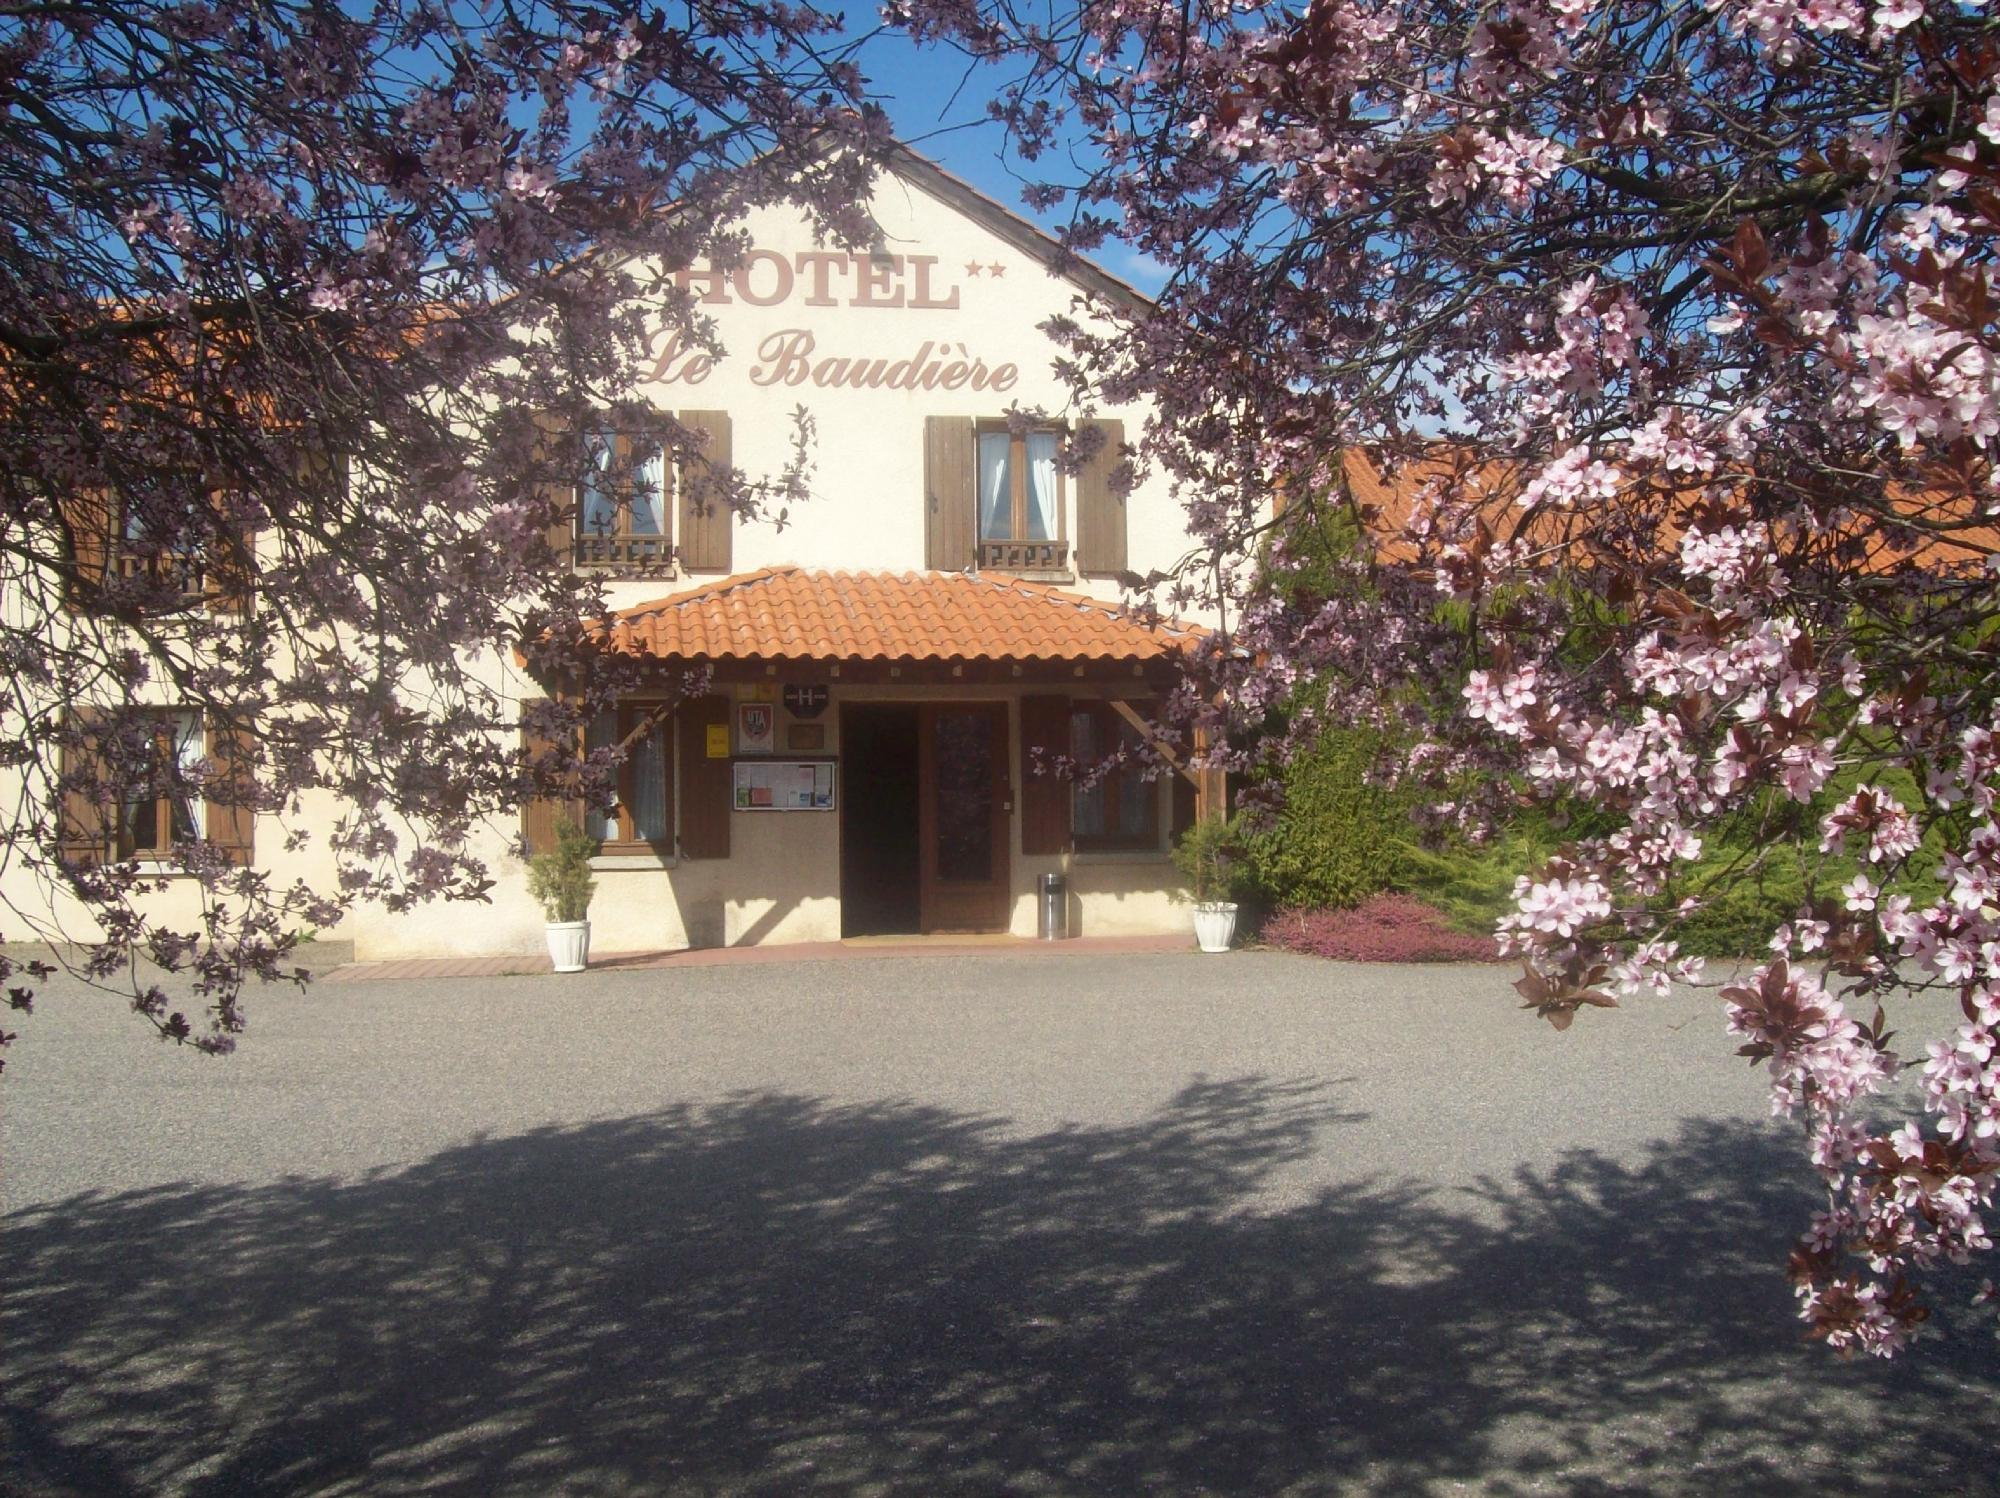 Hotel Le Baudiere